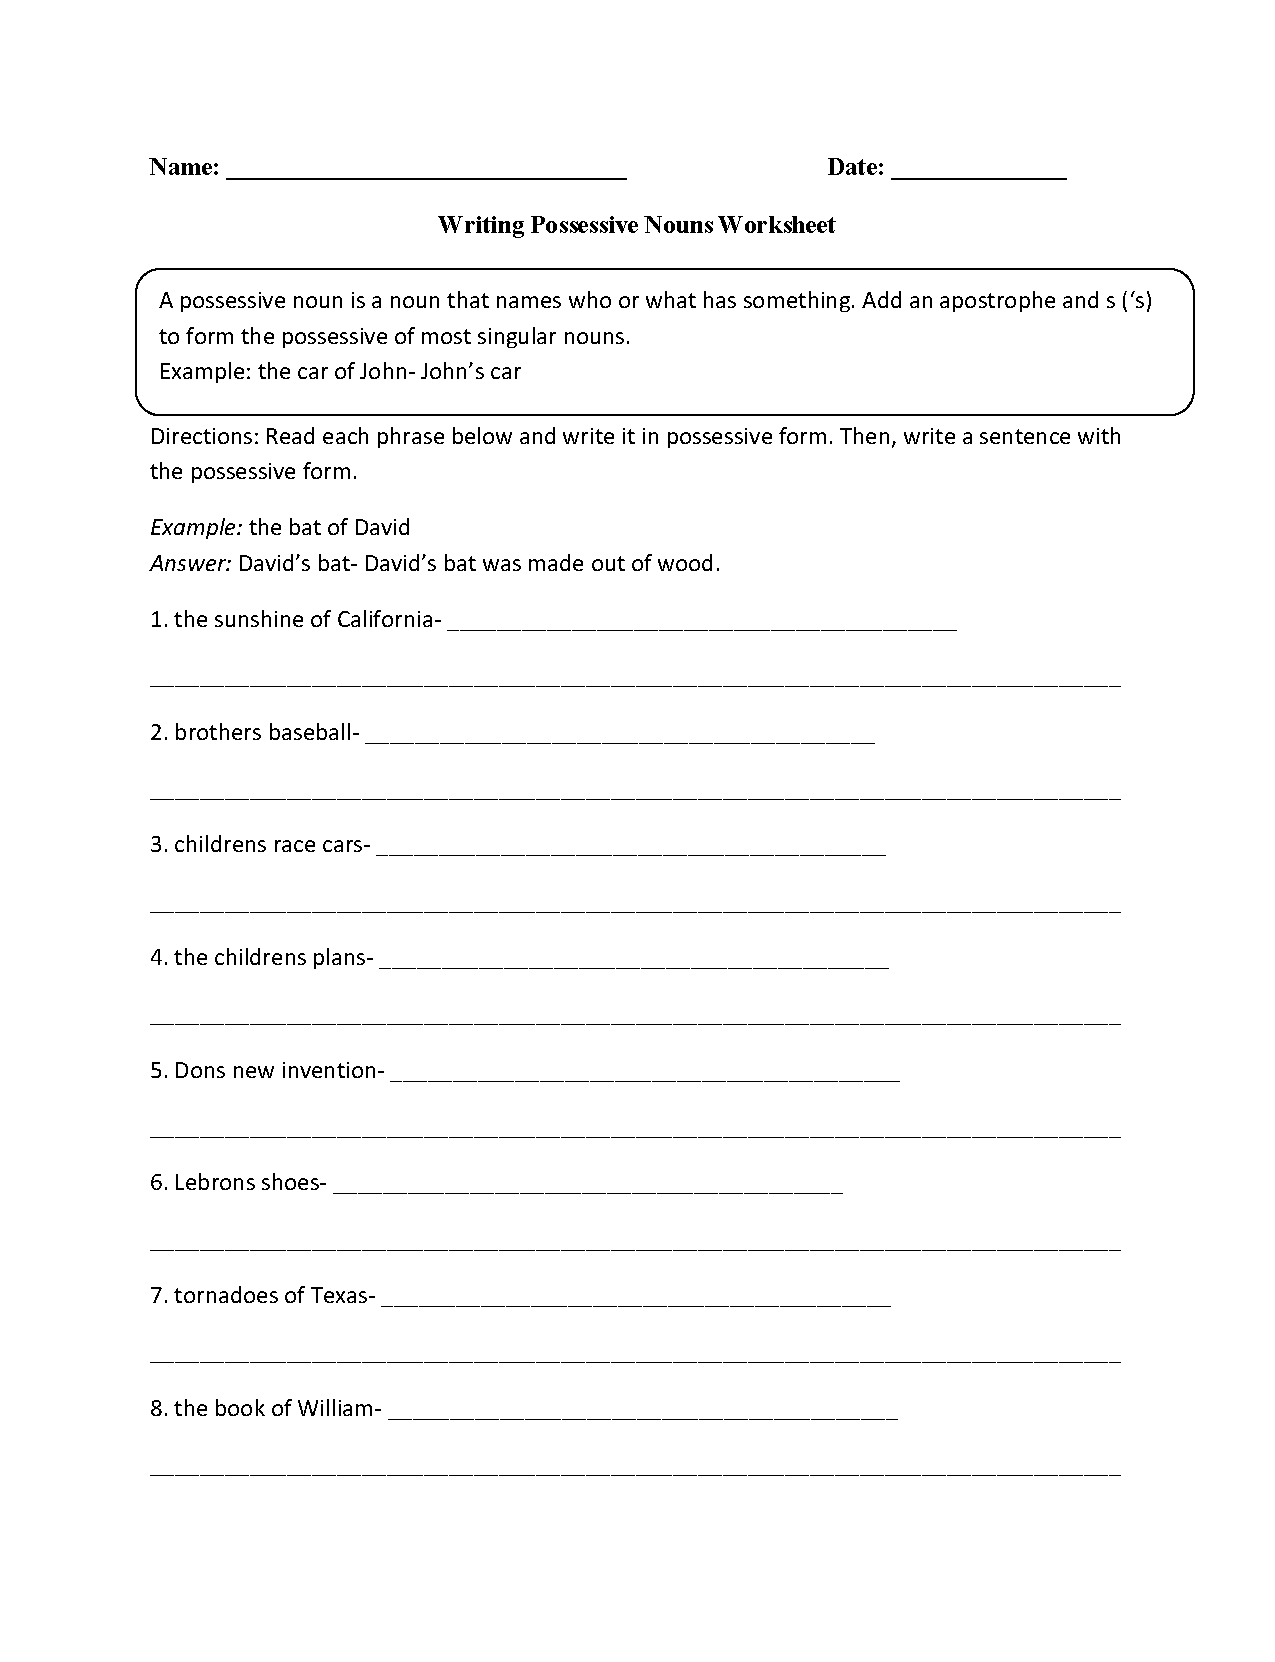 Worksheets Noun Worksheets 3rd Grade nouns worksheets possessive worksheet